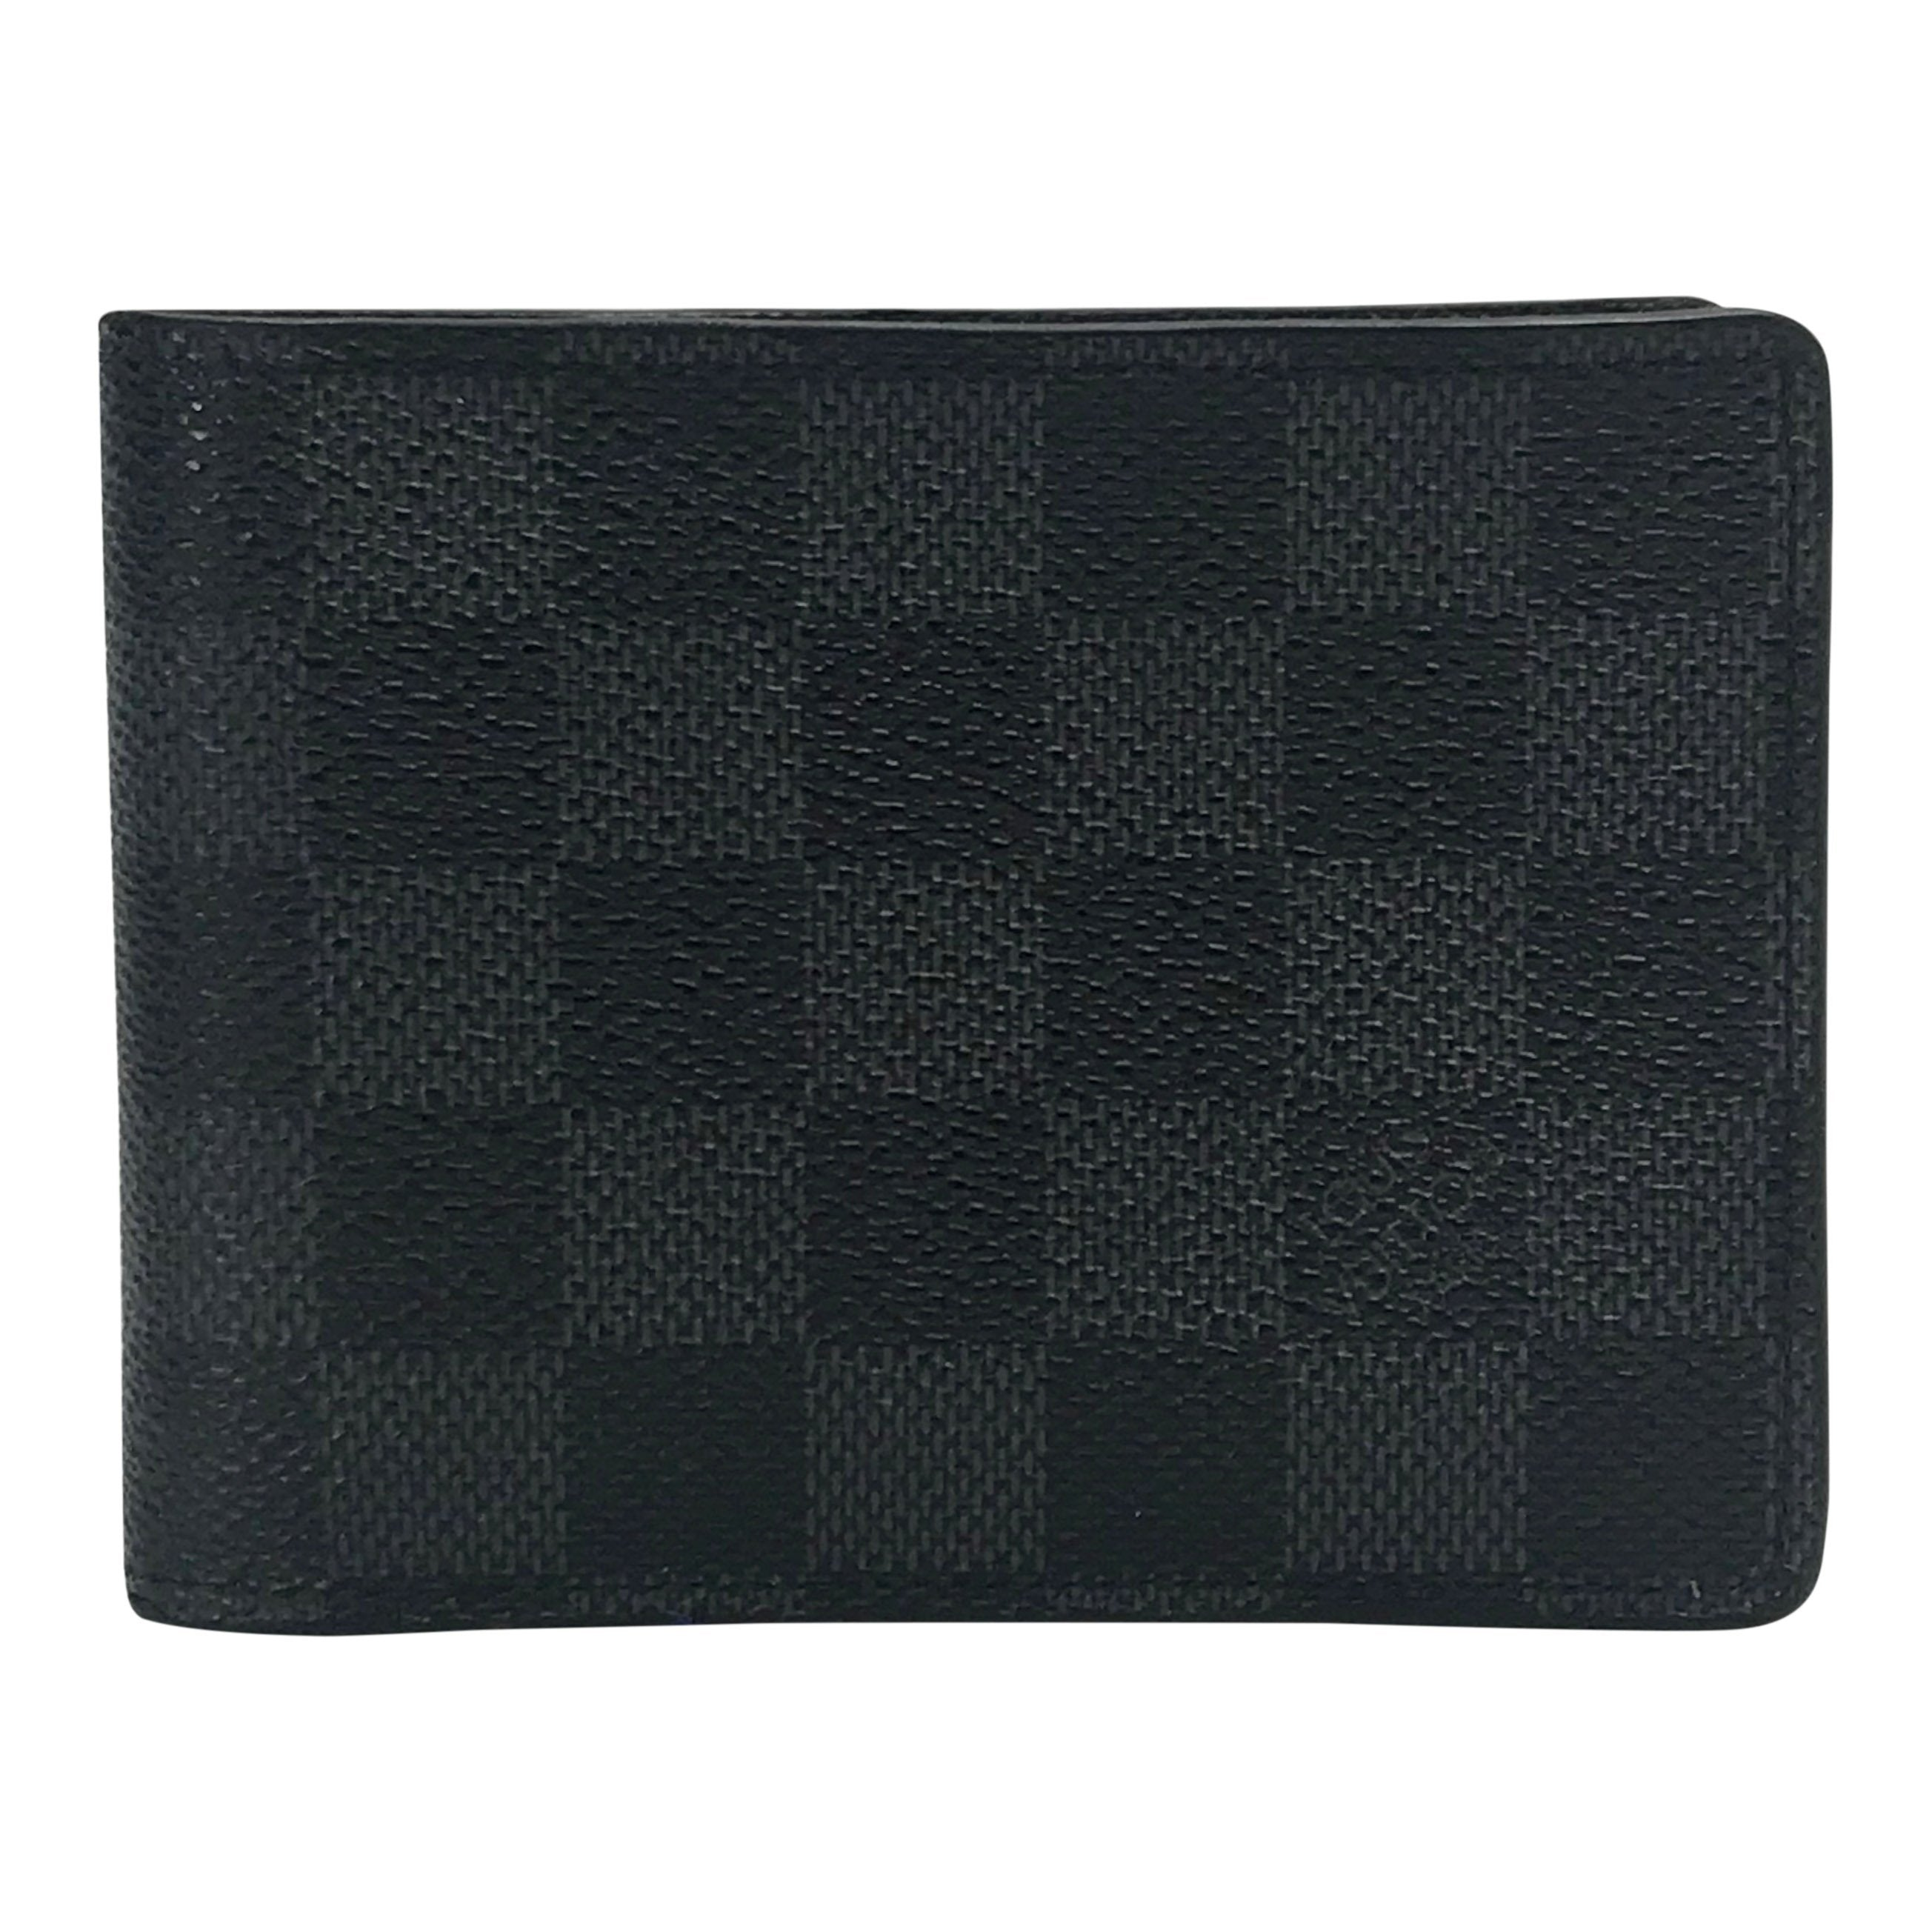 2c97b79dce7c Louis Vuitton Damier Graphite Multiple Wallet - Oliver Jewellery